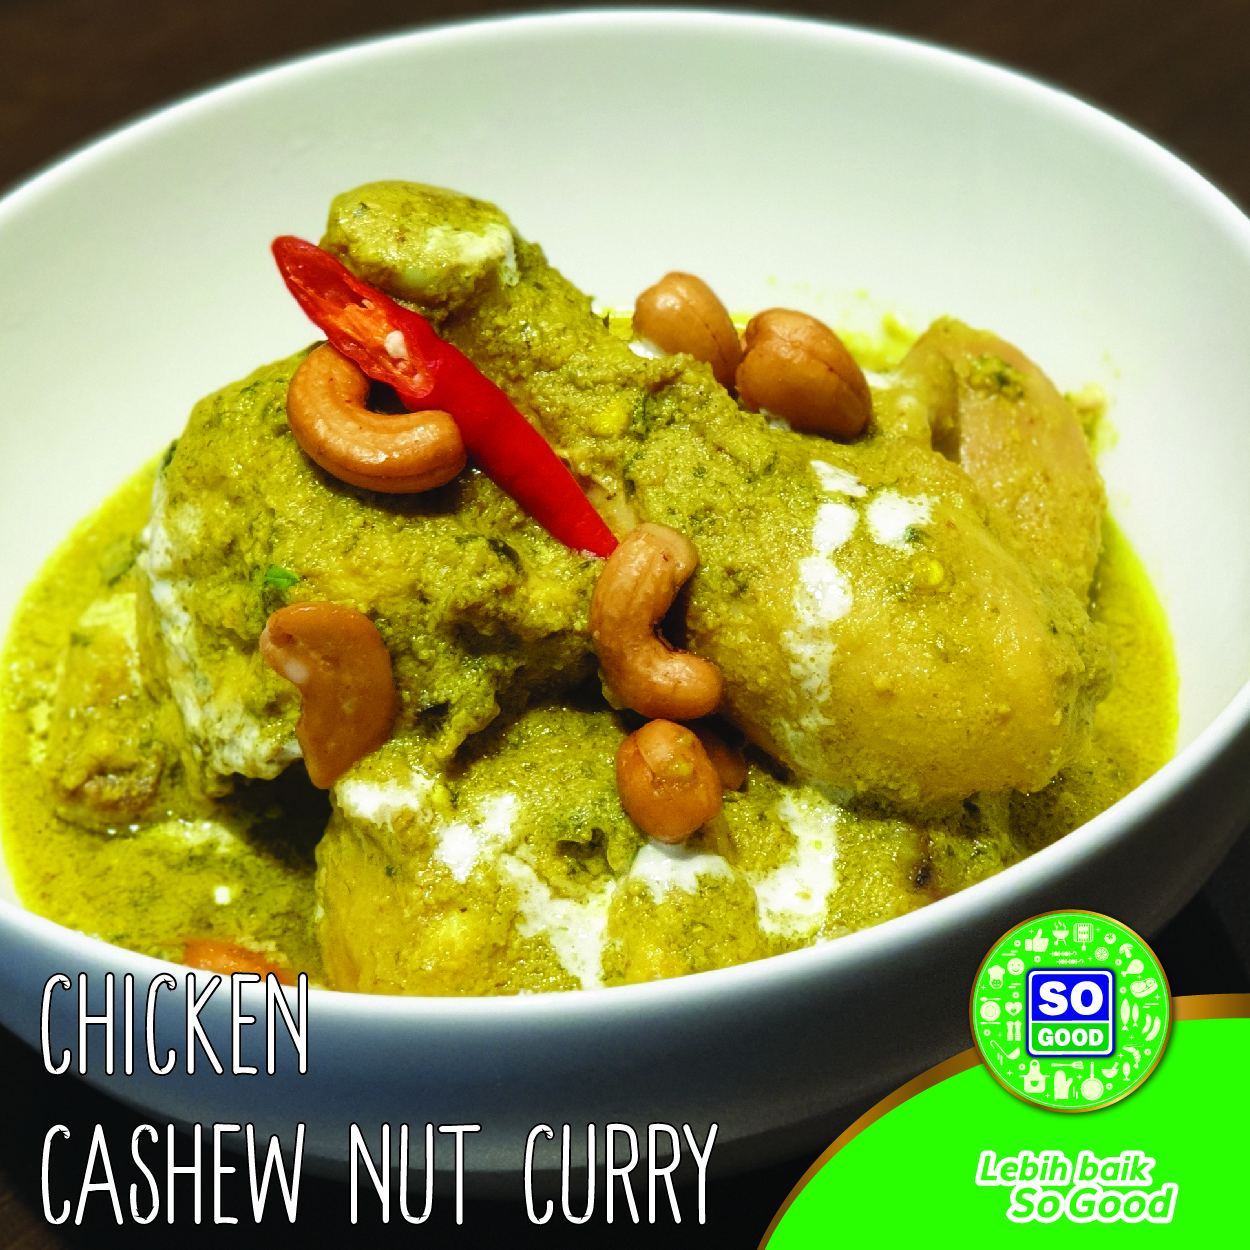 Image Chicken Cashew Nut Curry